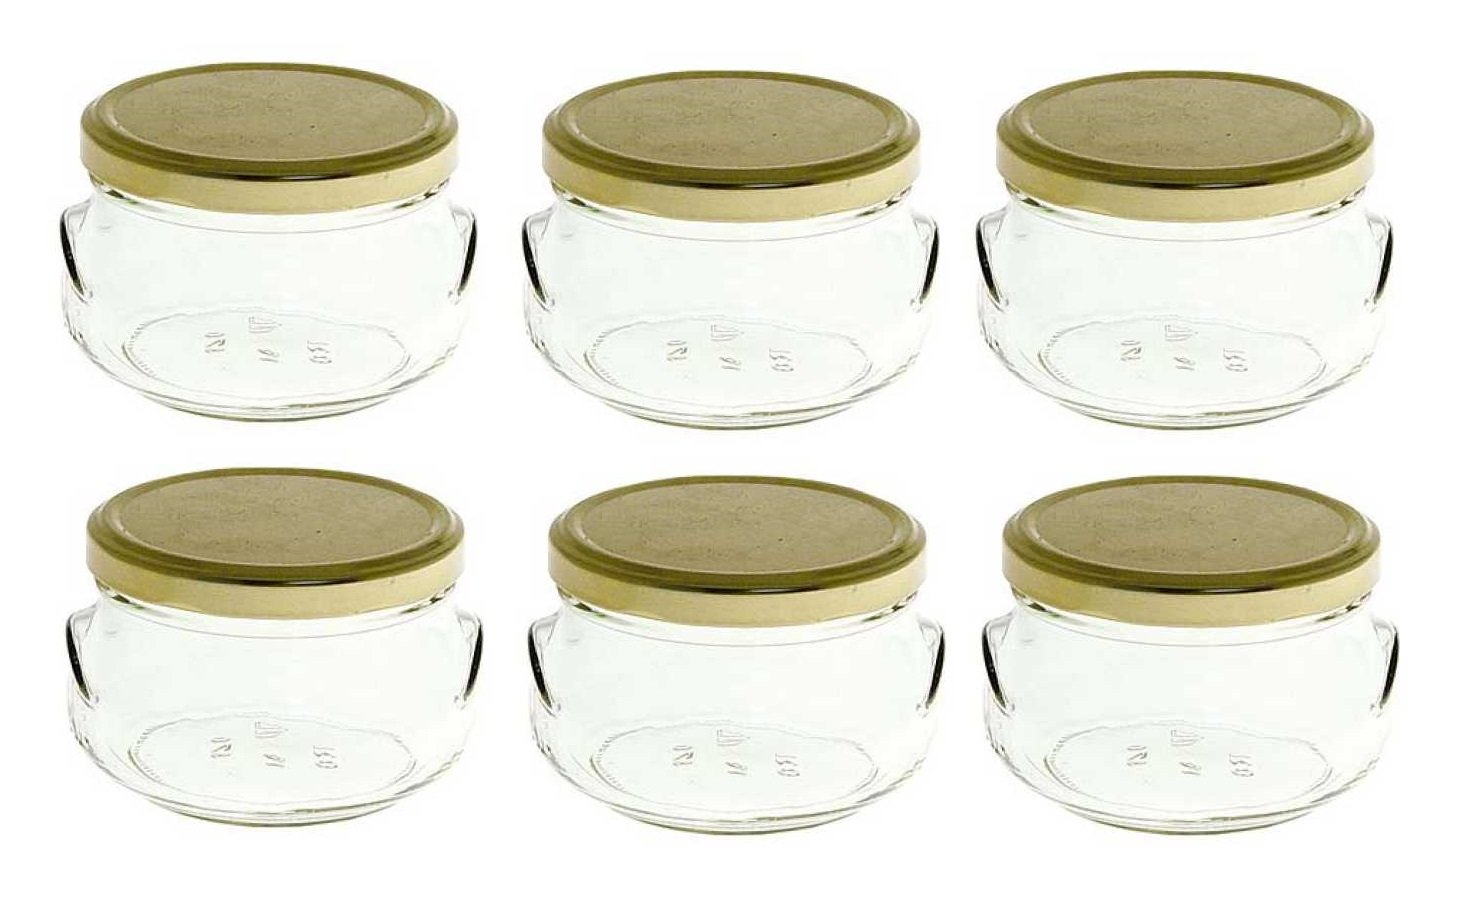 Amazon.com: Nakpunar 6 pcs, 6.75 oz Tureen Glass Jars for Candles ...